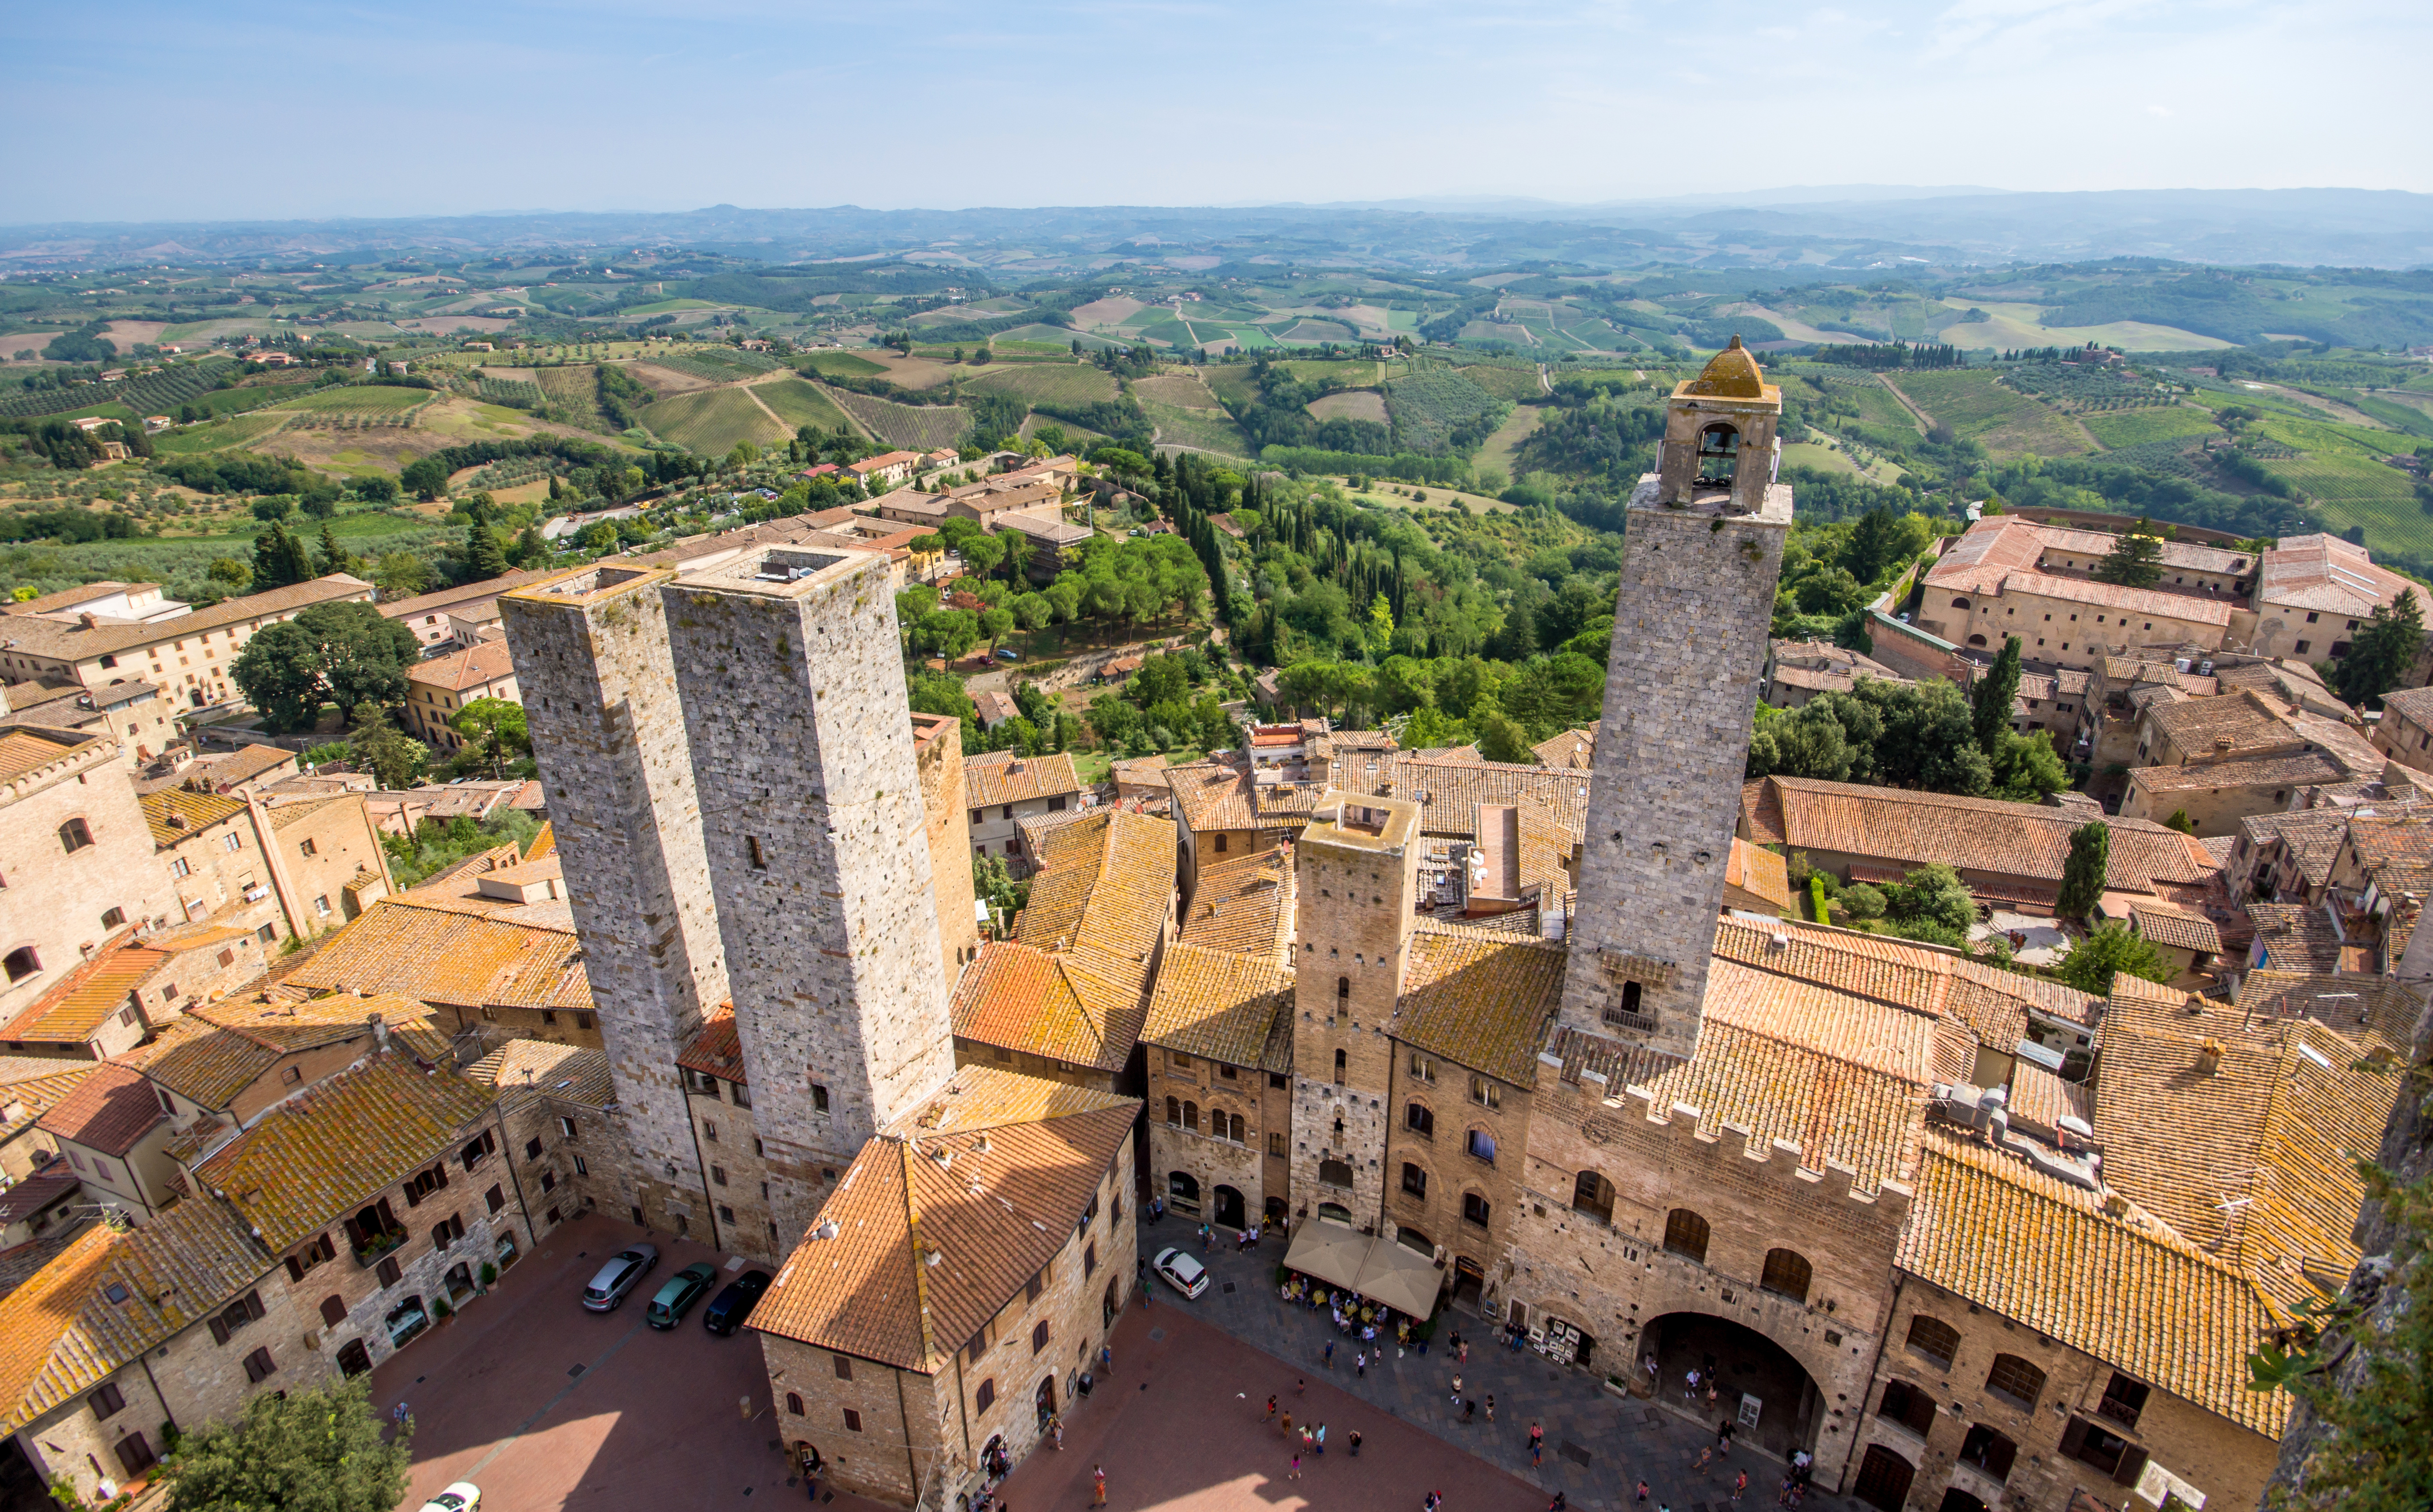 Road trip in Tuscany: Florence, San Gimignano, Pisa and Lucca